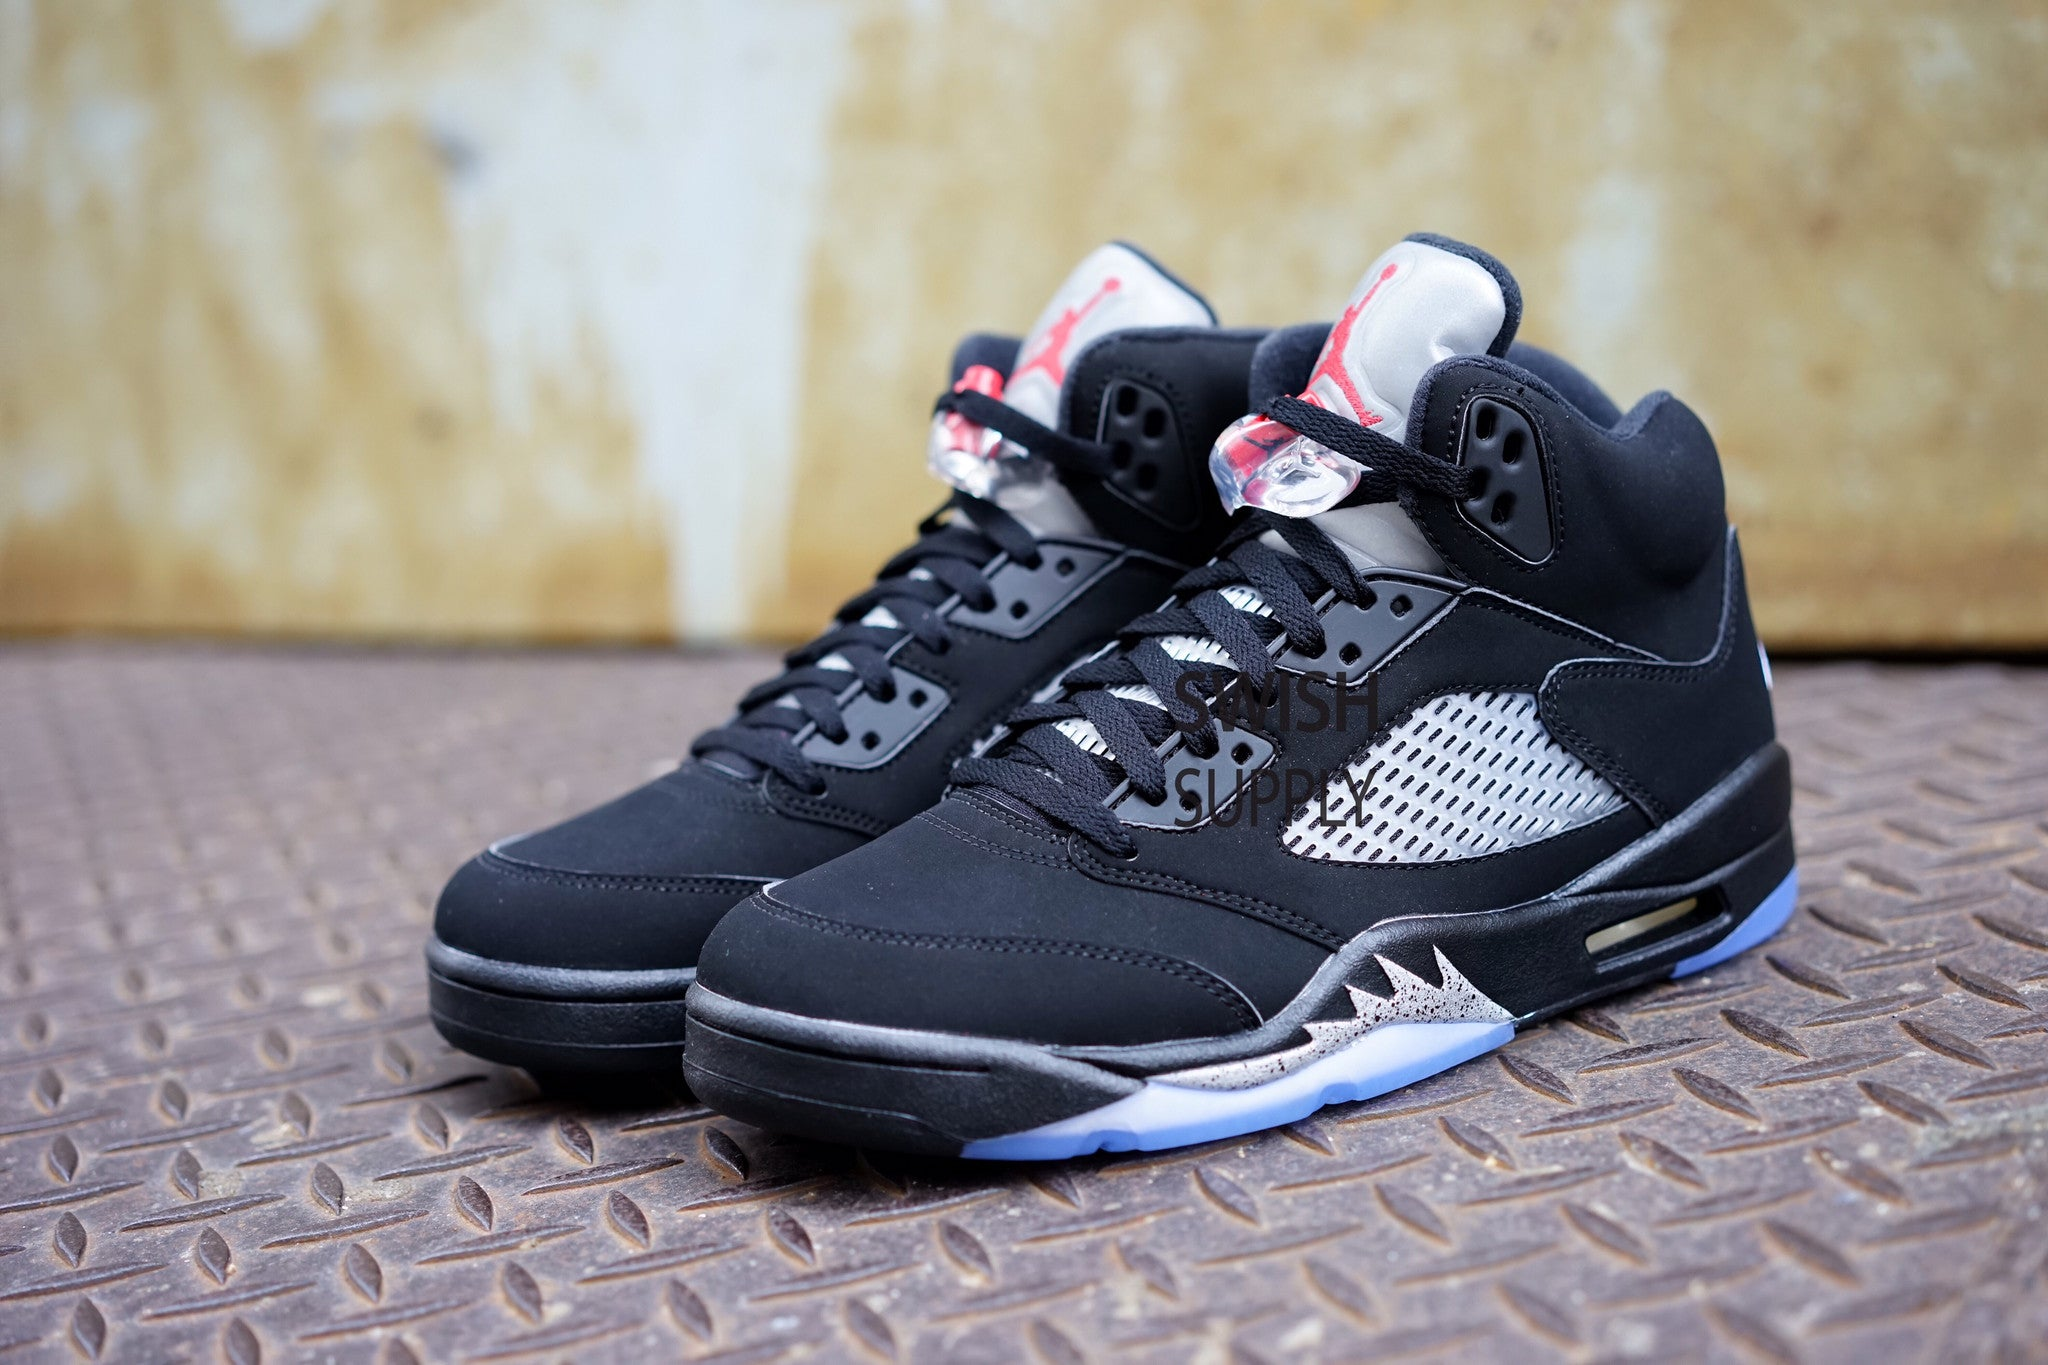 jordan air jordan 5 retro og metallic silver